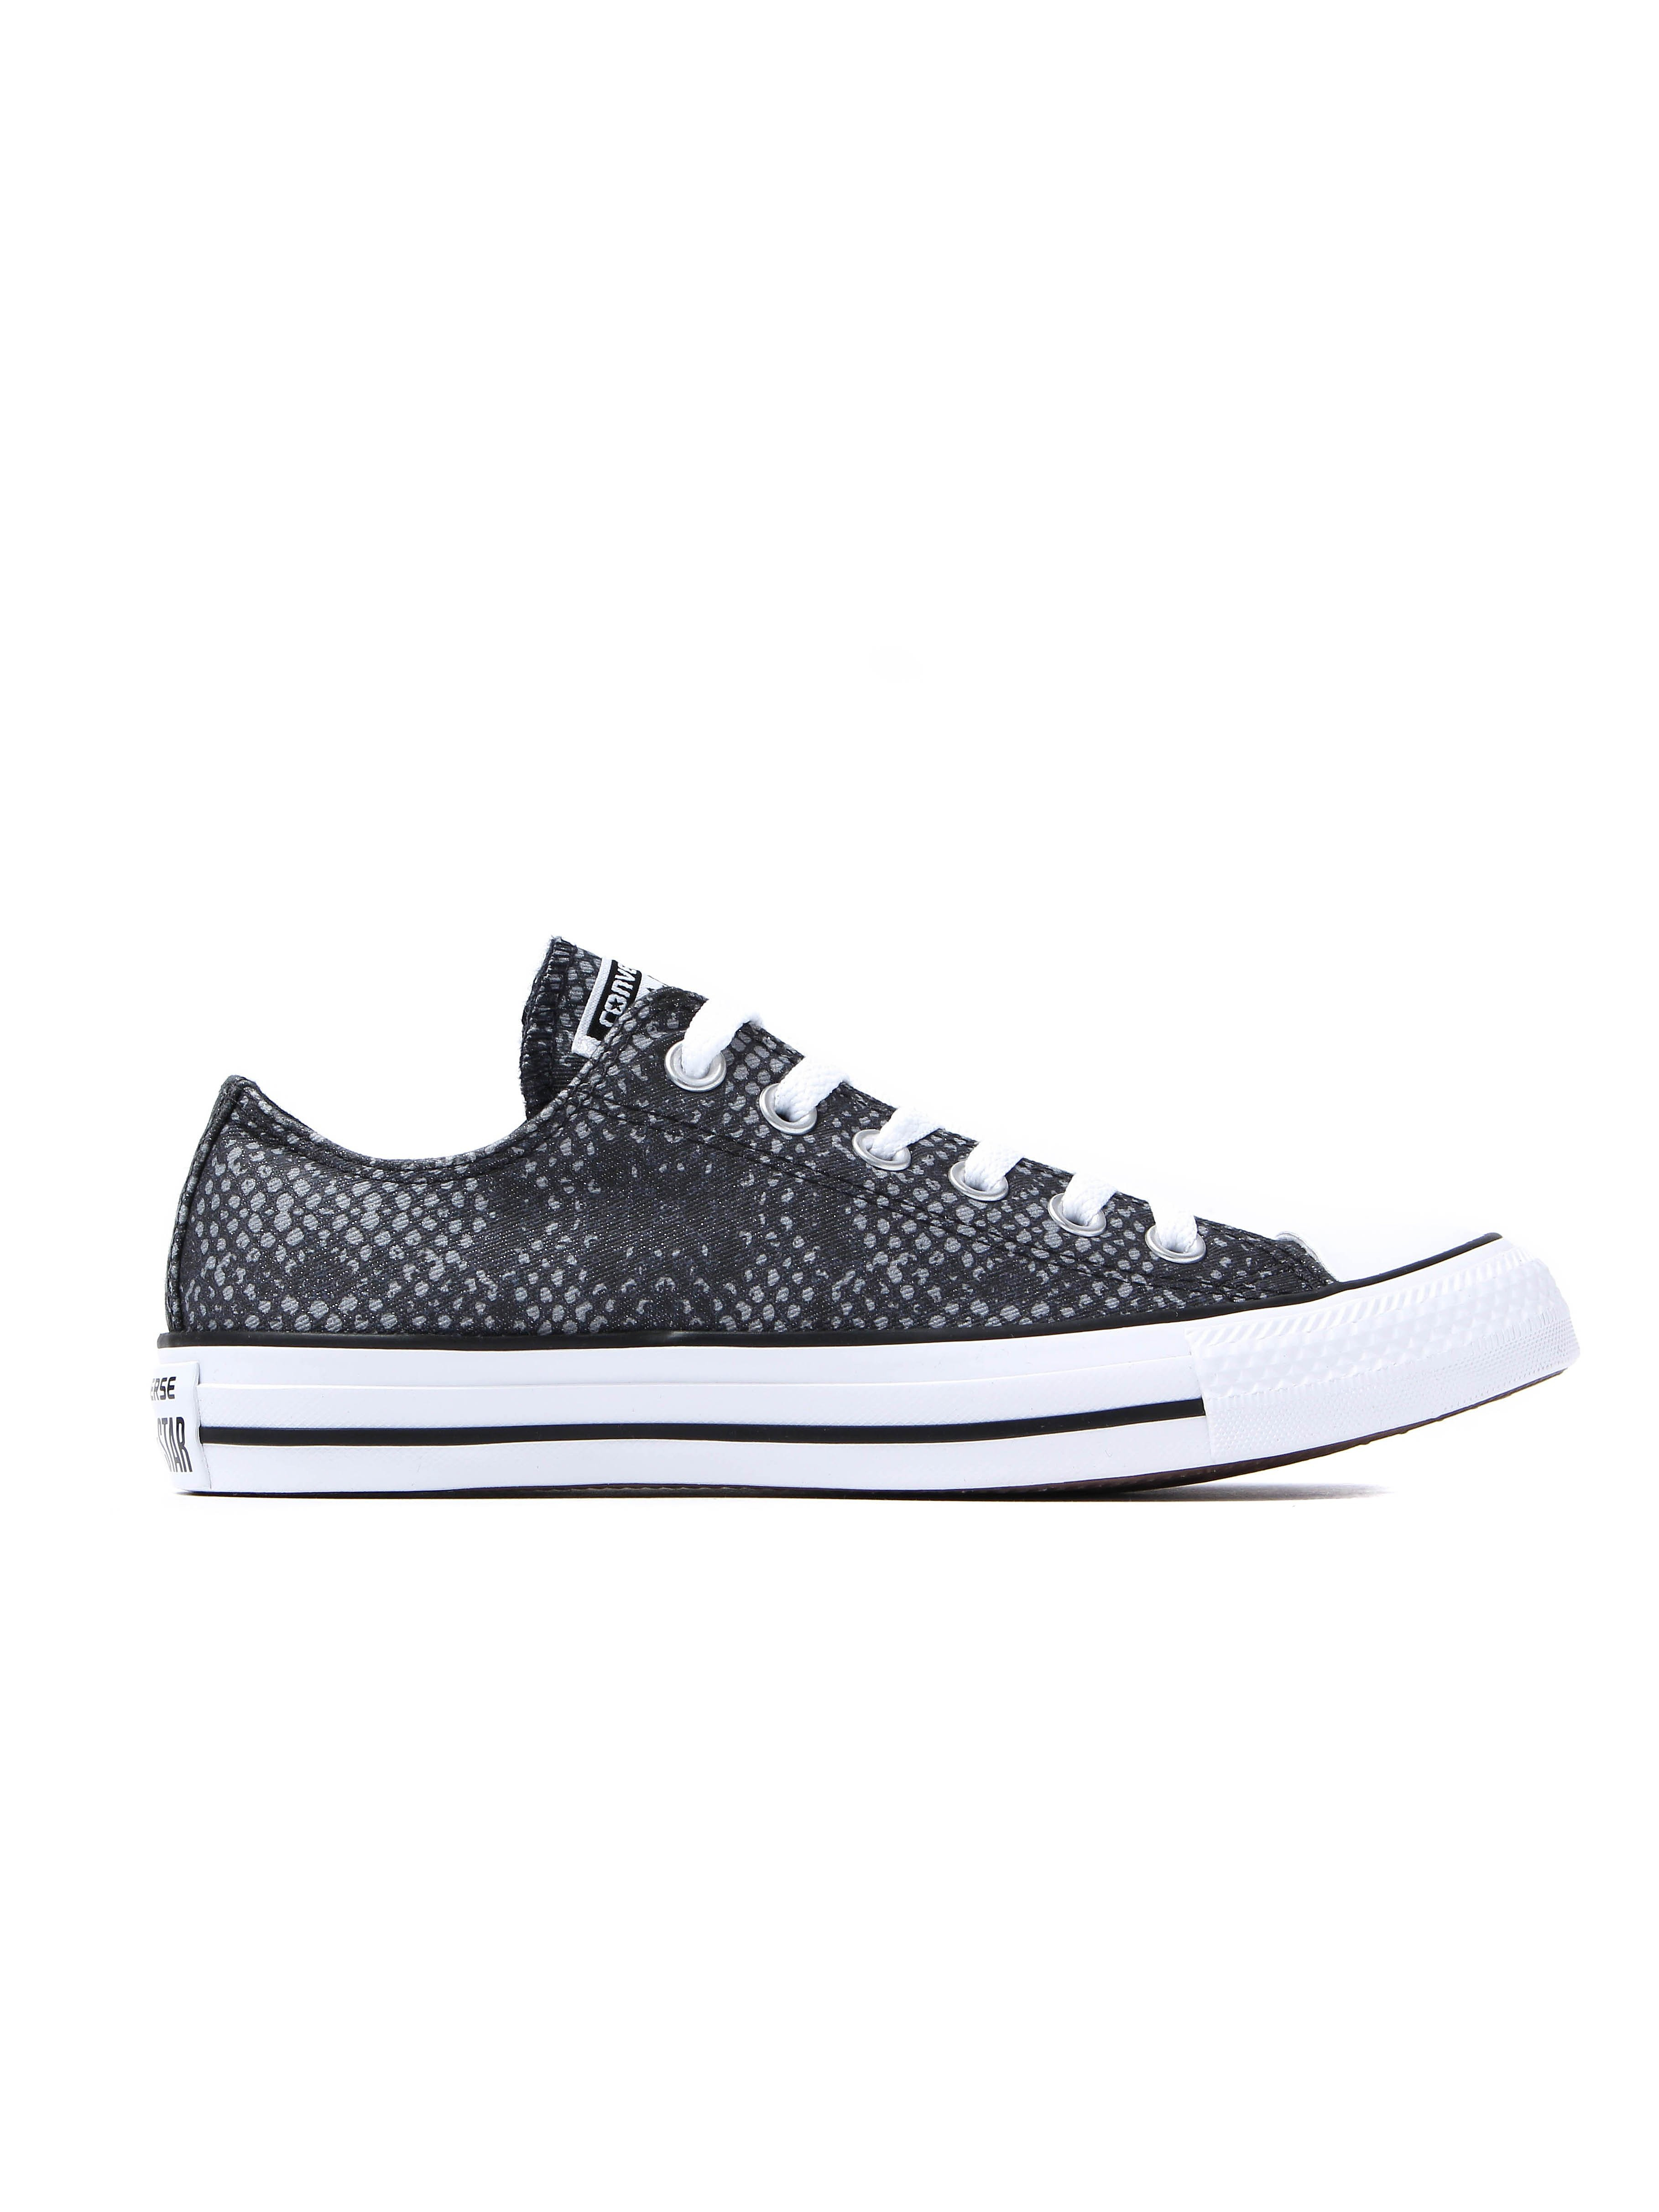 Converse Women's Chuck Taylor All Star OX Trainers – Black Snake